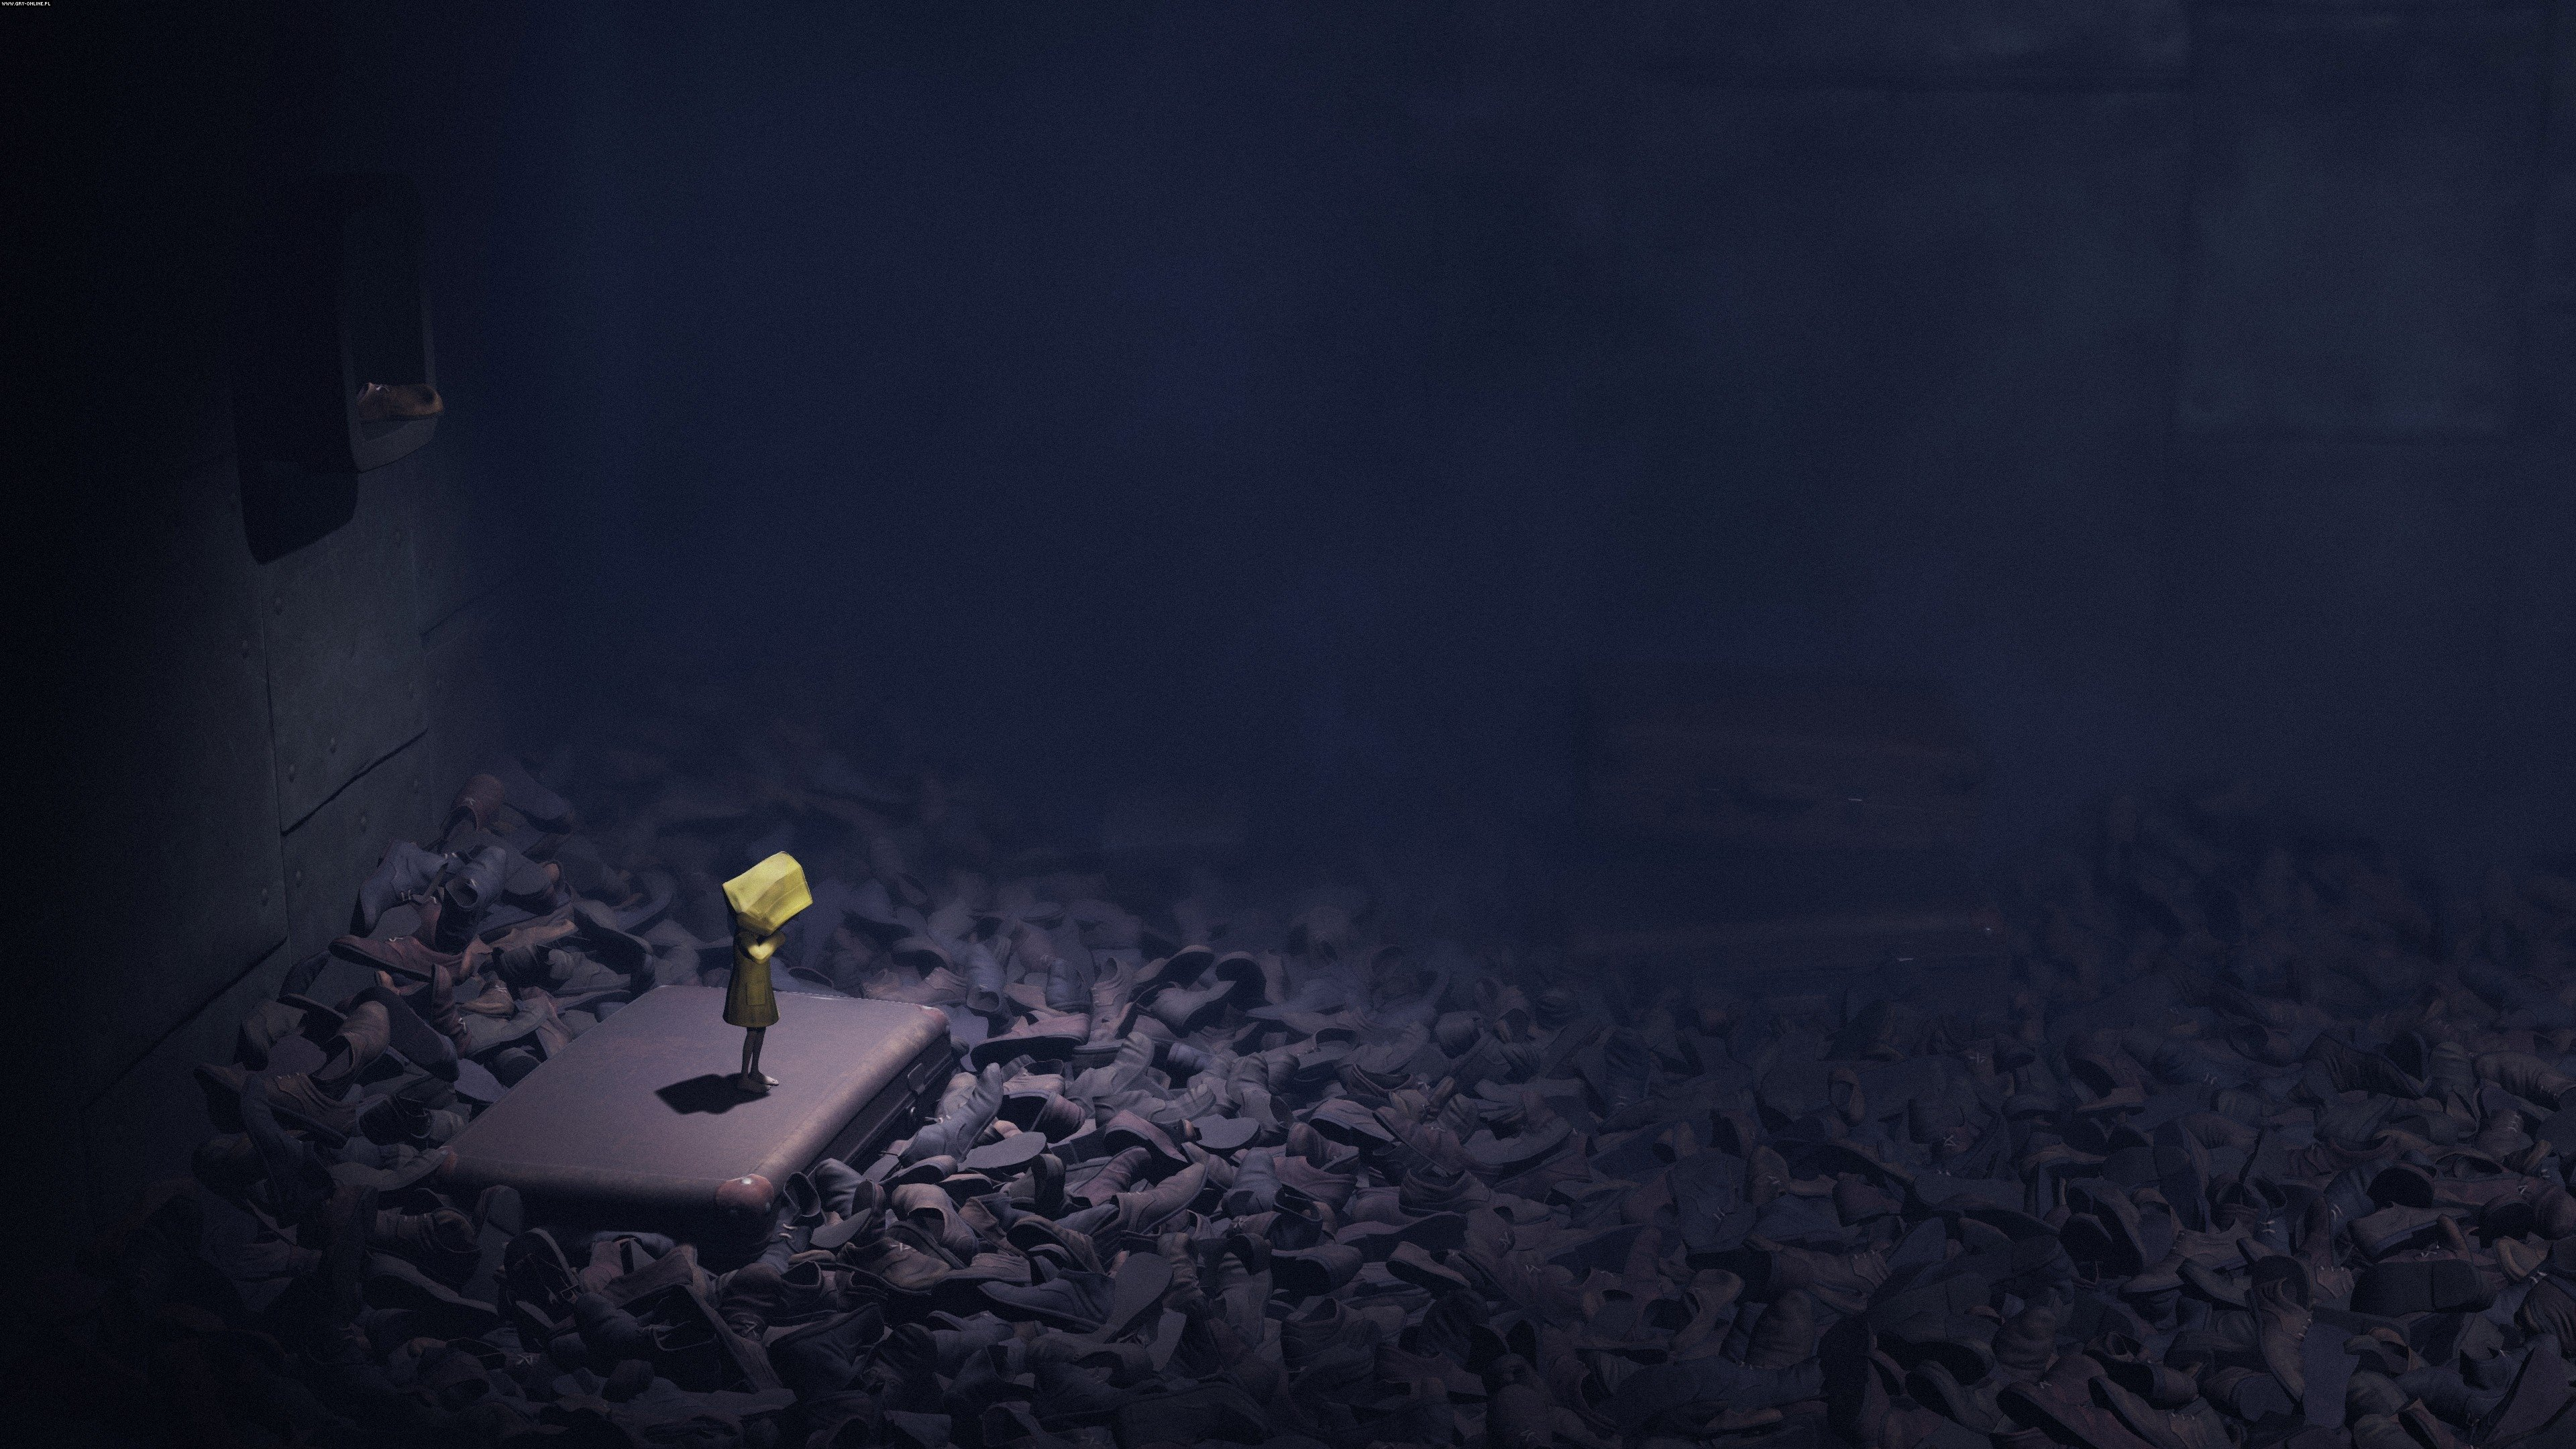 Little Nightmares PS4 Gry Screen 9/19, Tarsier Studios, Bandai Namco Entertainment